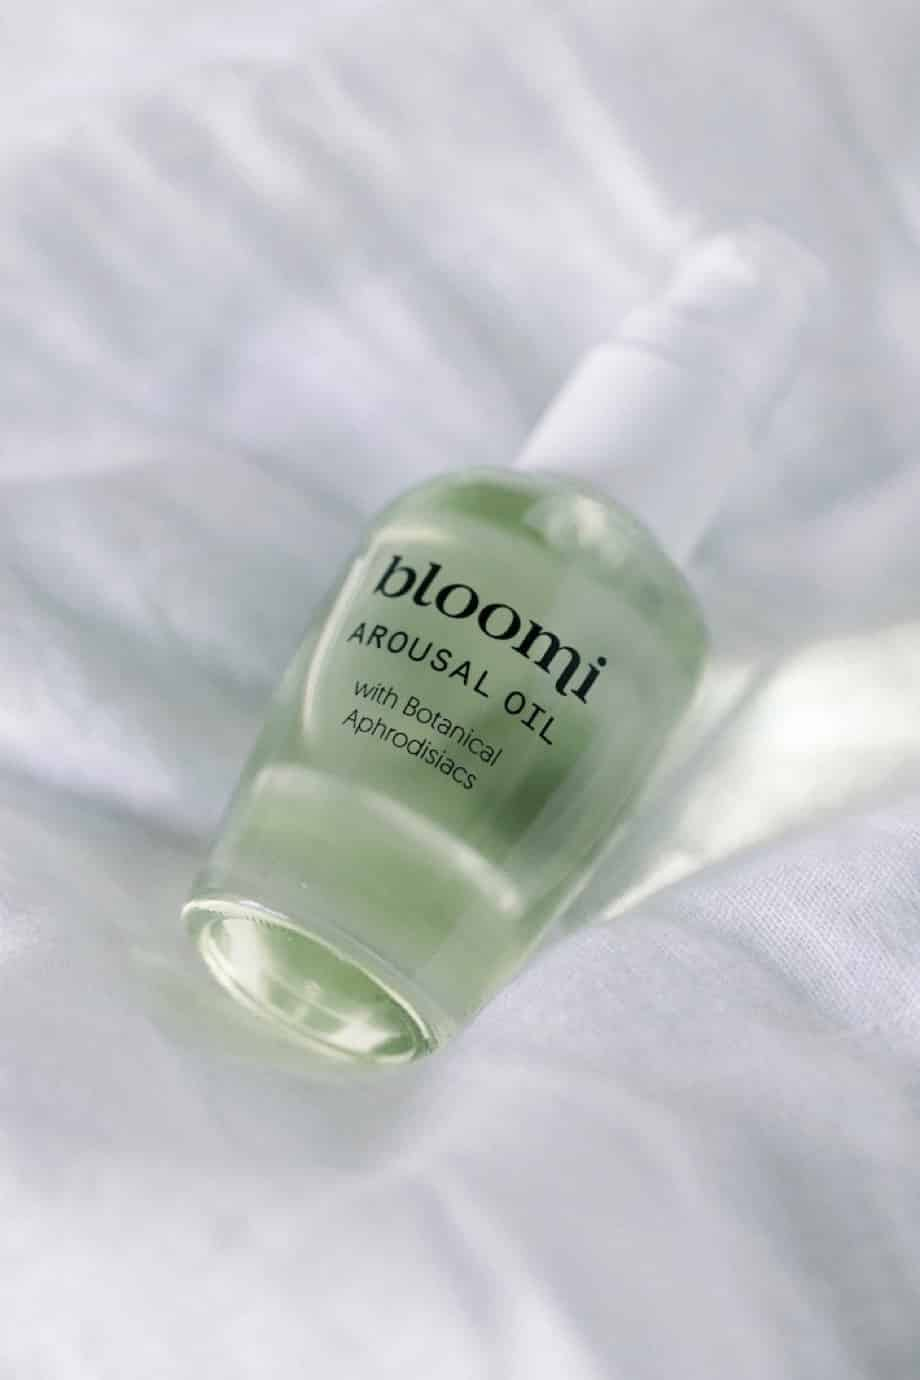 The Bloomi Arousal Oil lays on a bed showing off the packaging label design.